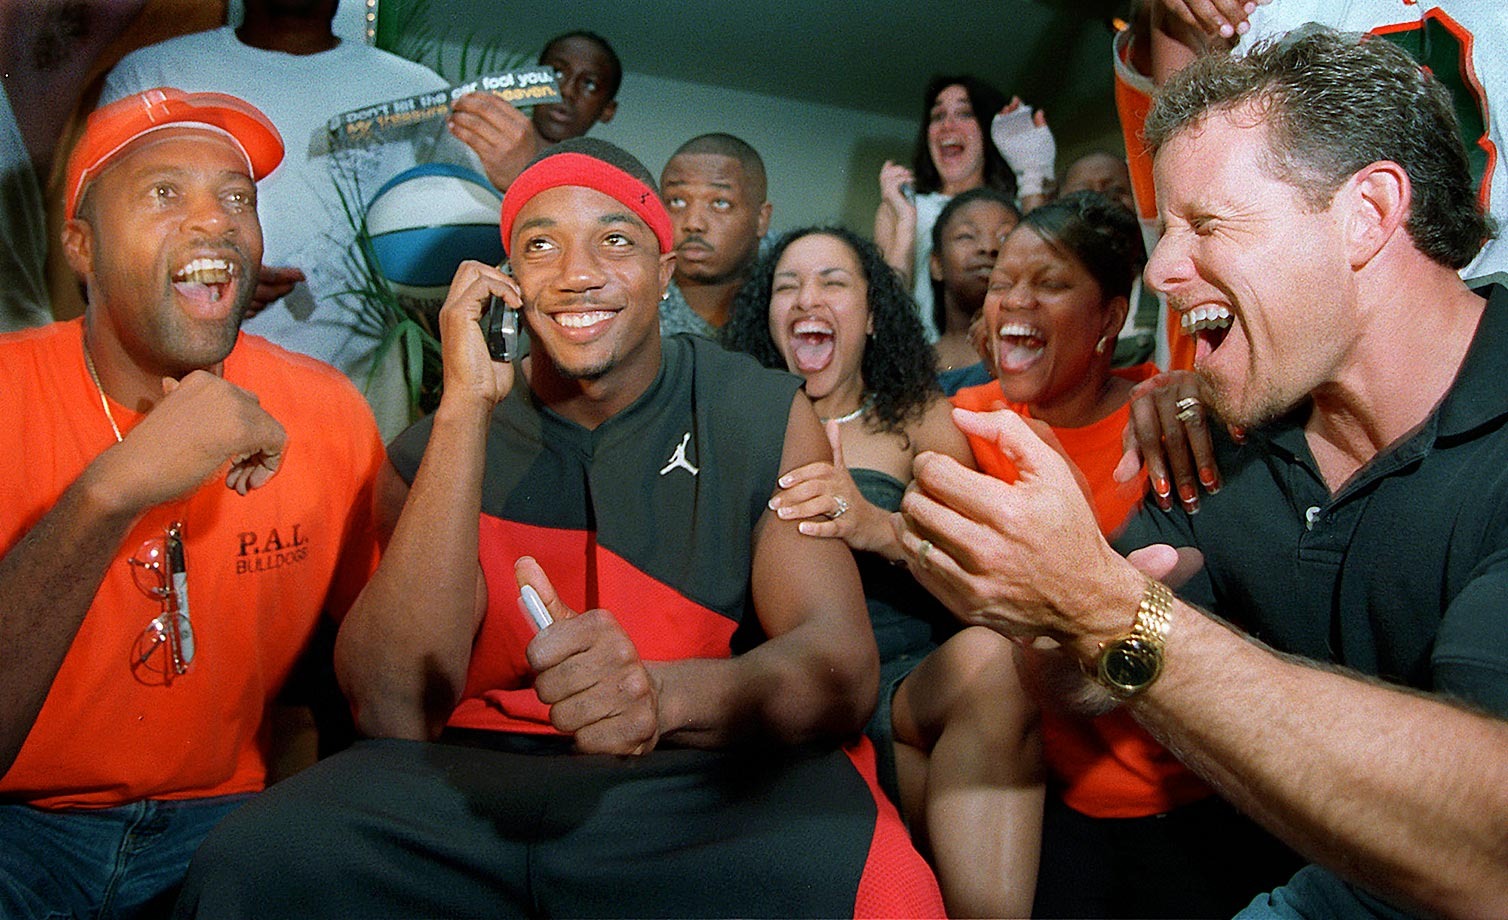 Miami cornerback Mike Rumph gets the call from the San Francisco 49ers that he was selected 27th in the 2002 draft.